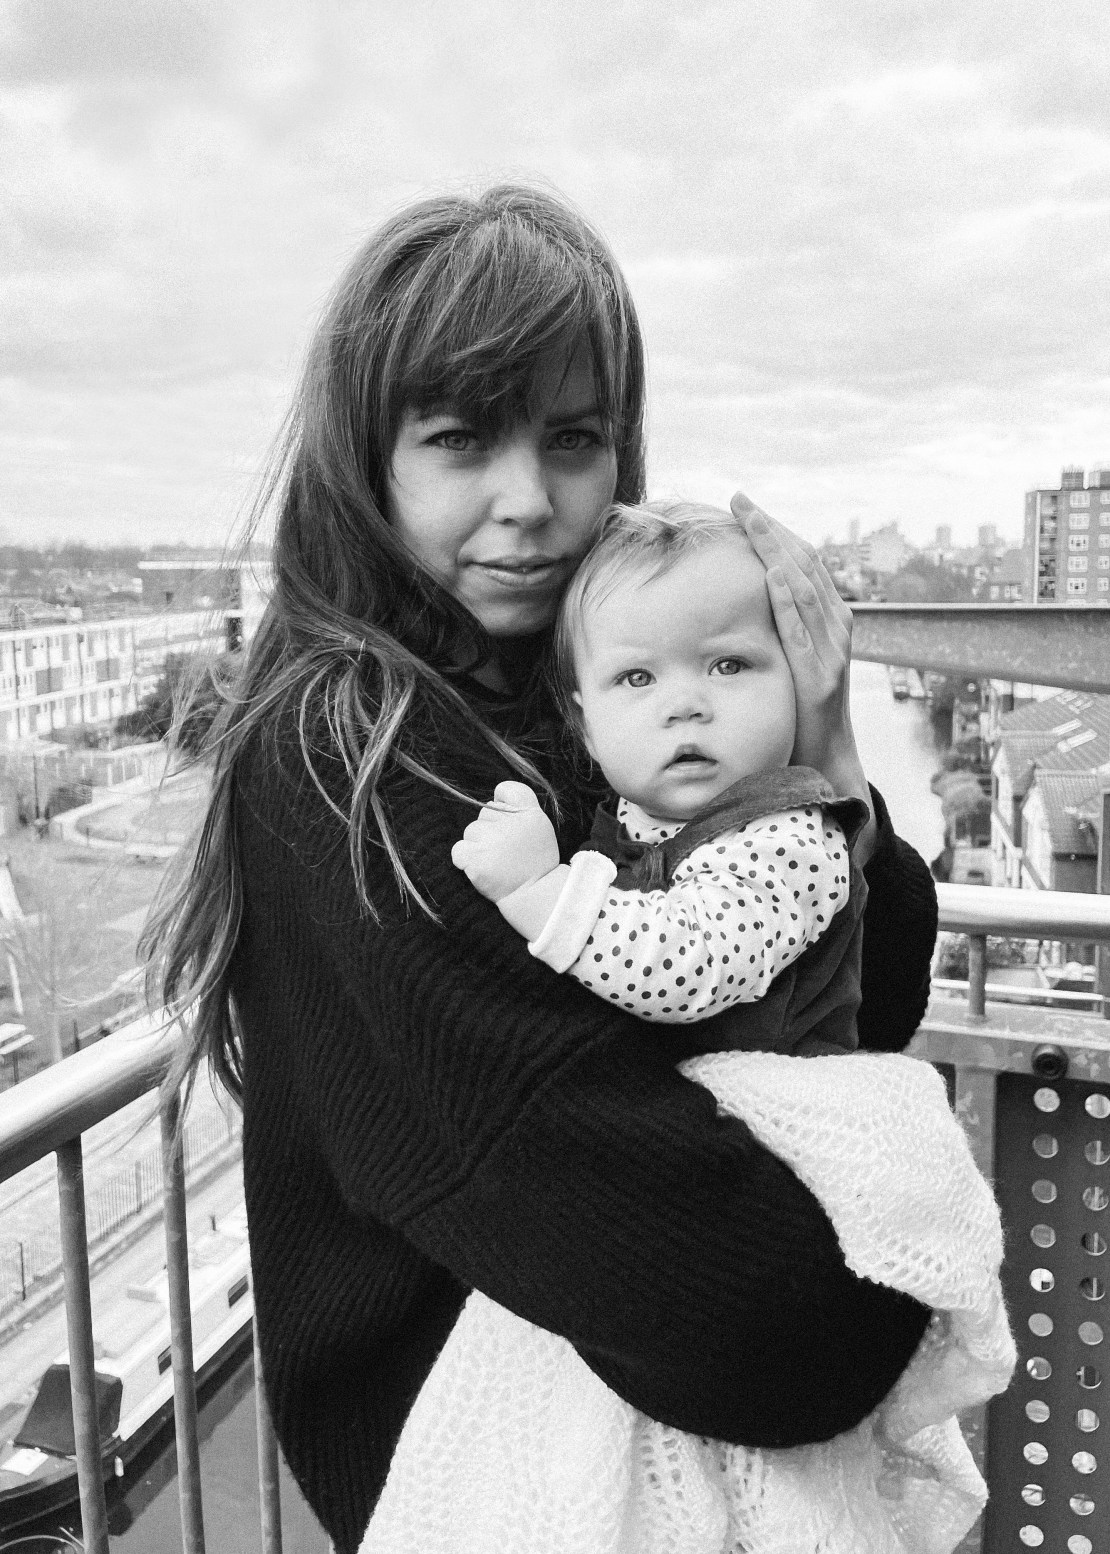 Woman holding her daughter on a balcony overlooking a canal